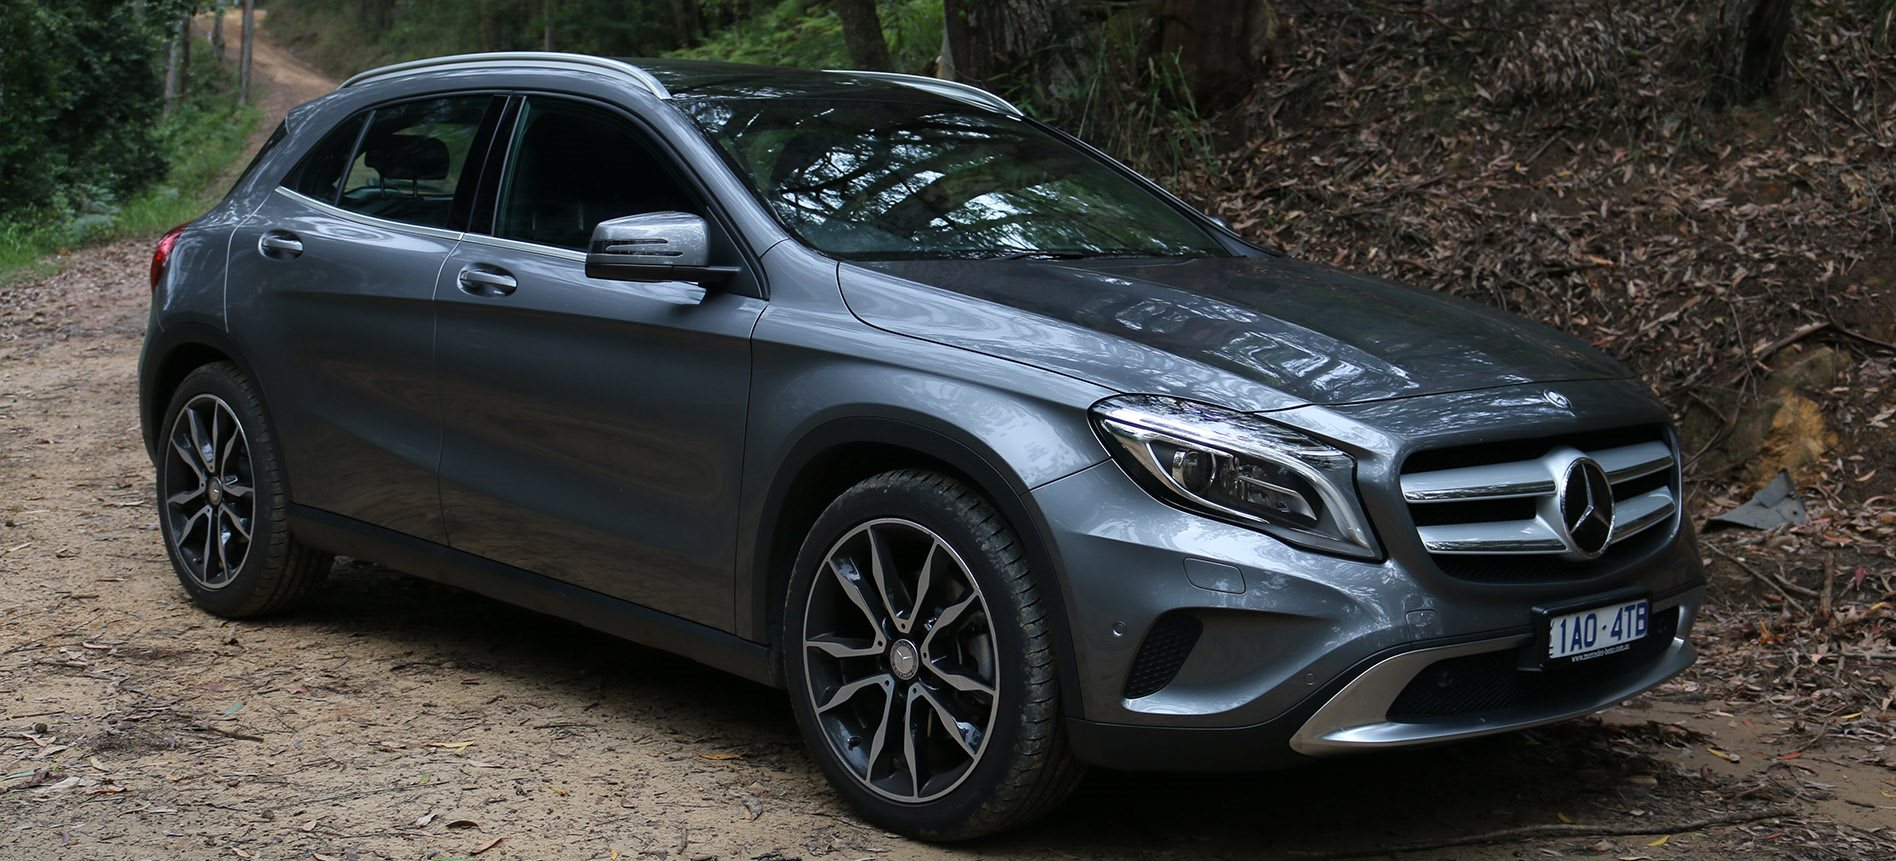 Fuel tank size on mercedes gla autos post for Mercedes benz gla250 lease